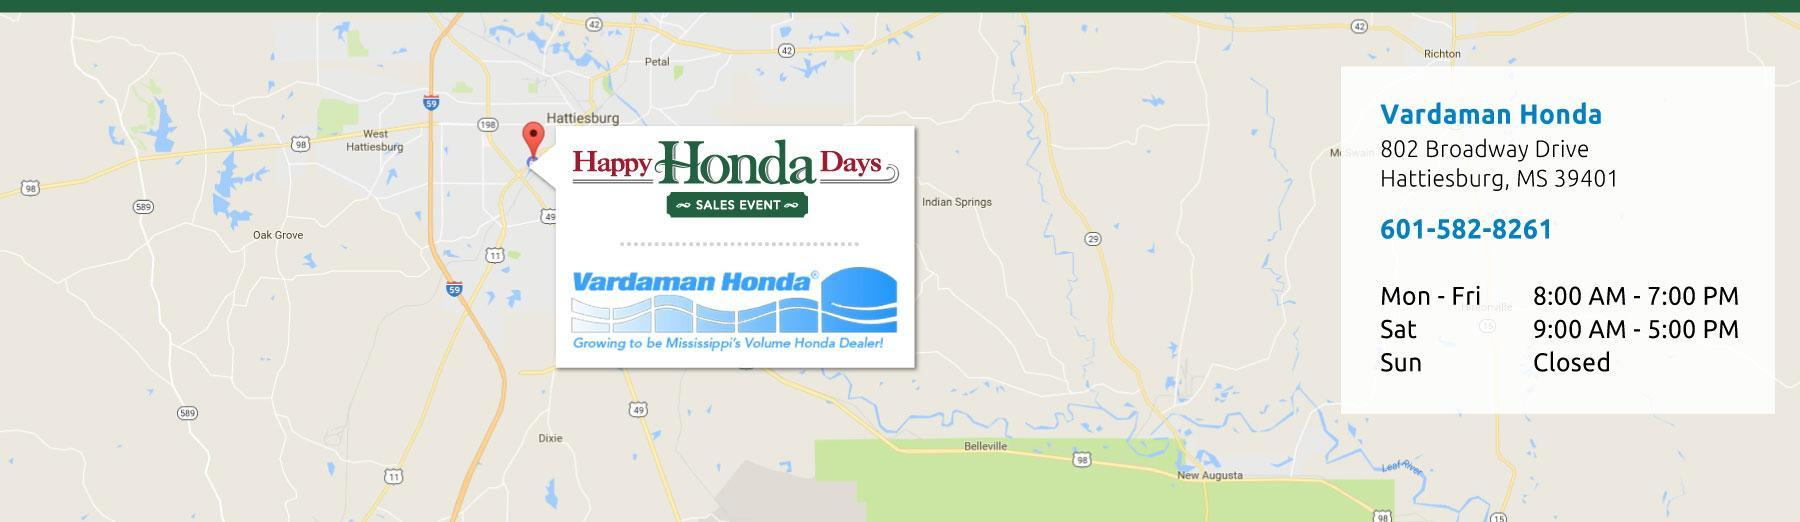 Vardaman Honda Hours and Directions